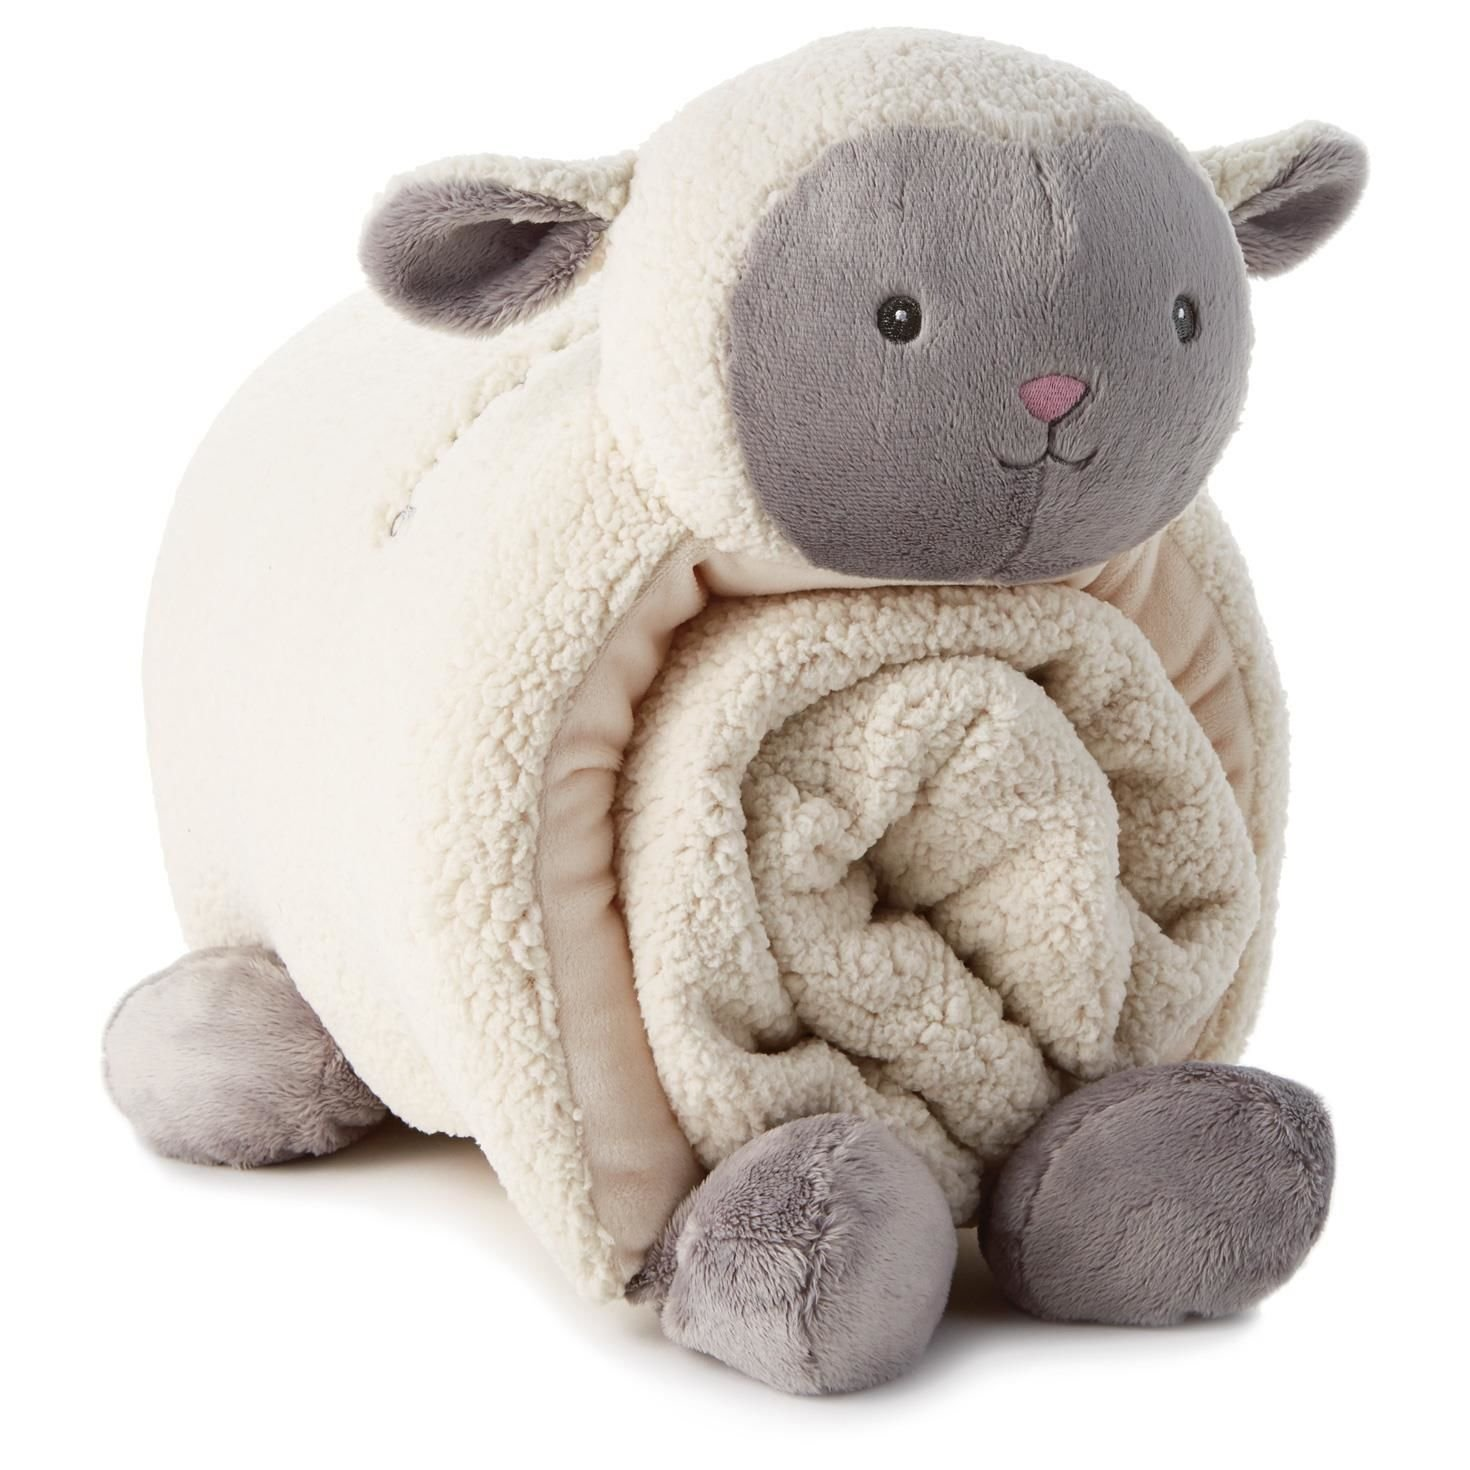 Hallmark Lamb Pillow and Blanket Set